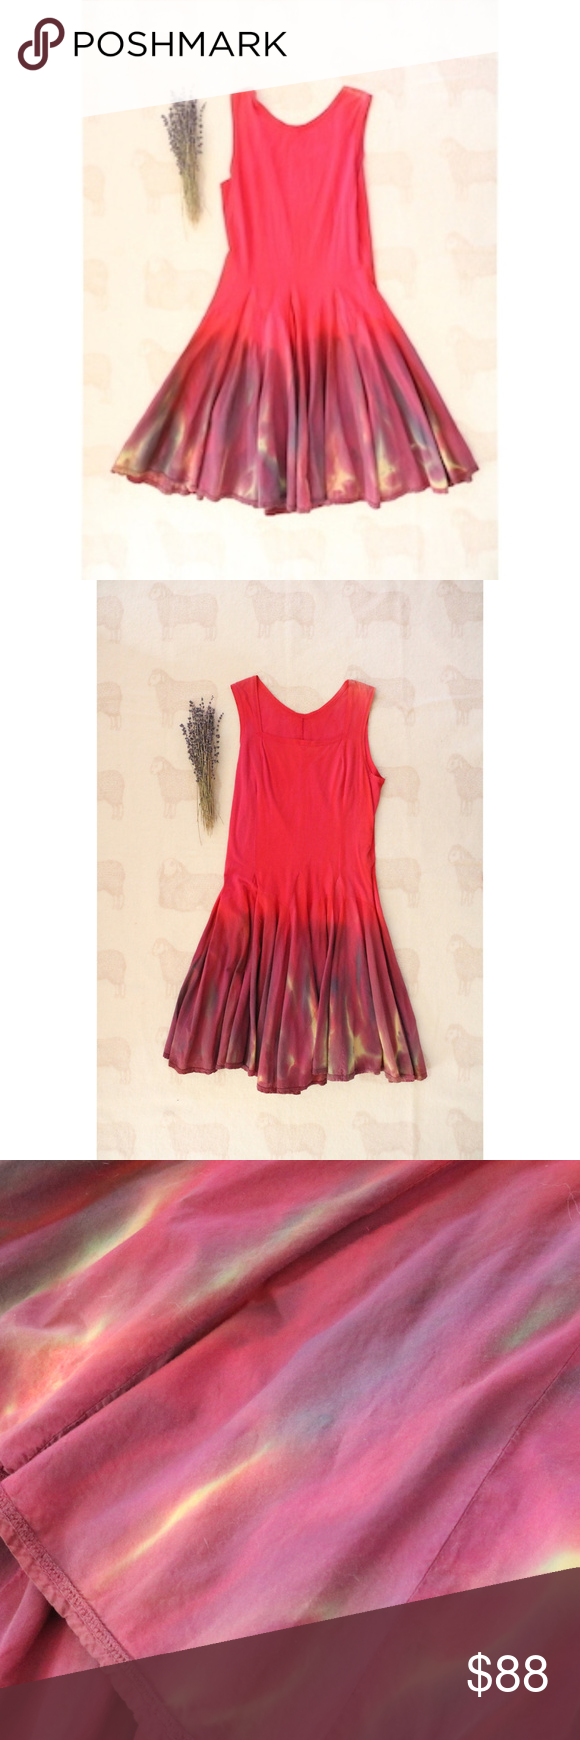 Hot pink color dress  Luna Luz  NWOT Ombre Hot Pink Sundress  Hot pink Ombre and Cotton